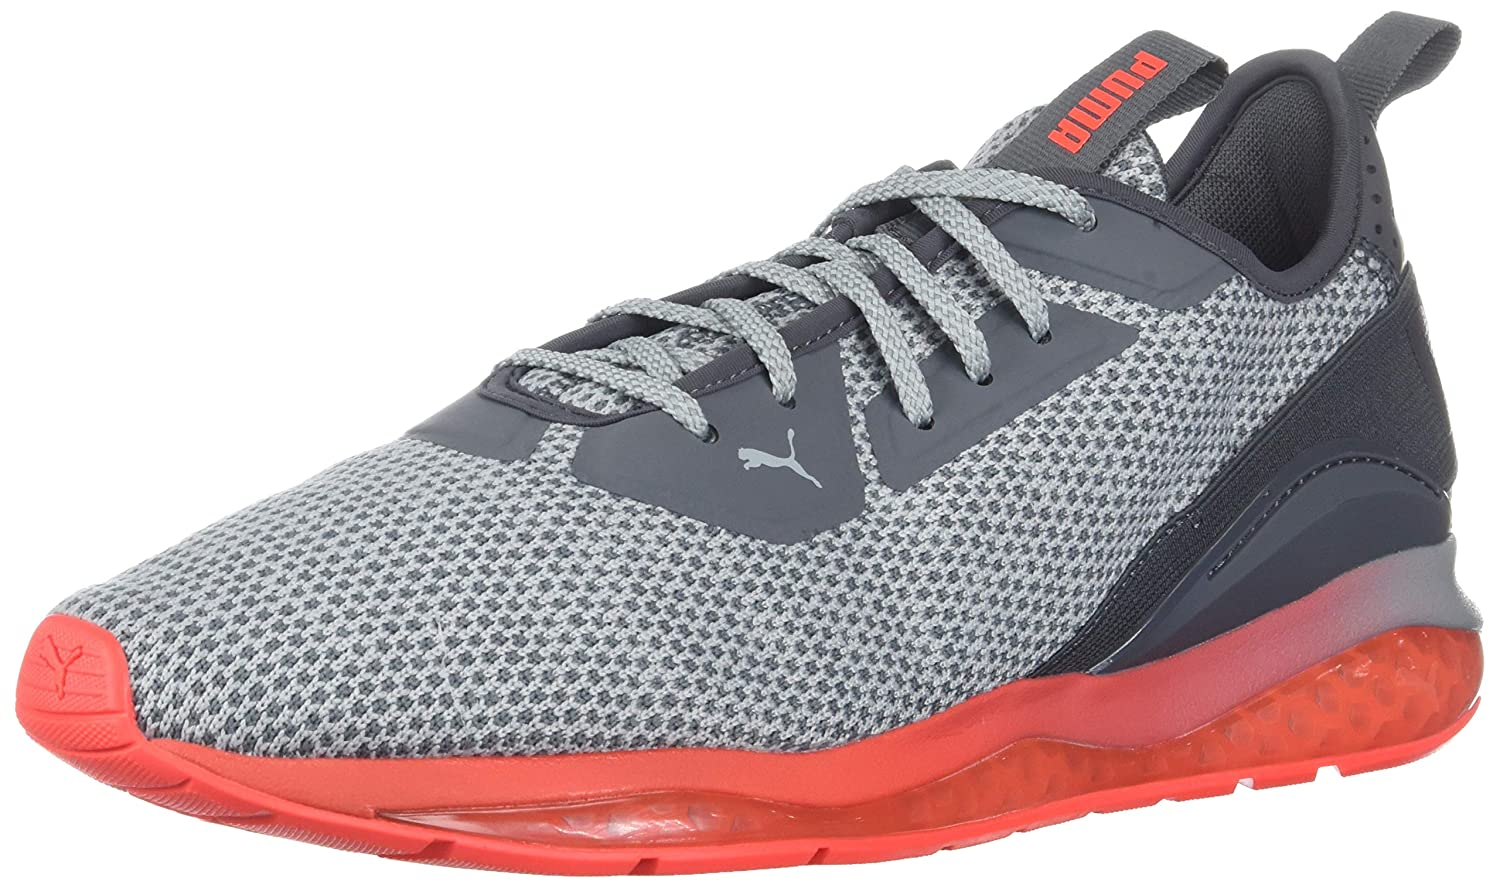 Puma - Chaussures Ultimate Descend Northern Lights Hommes